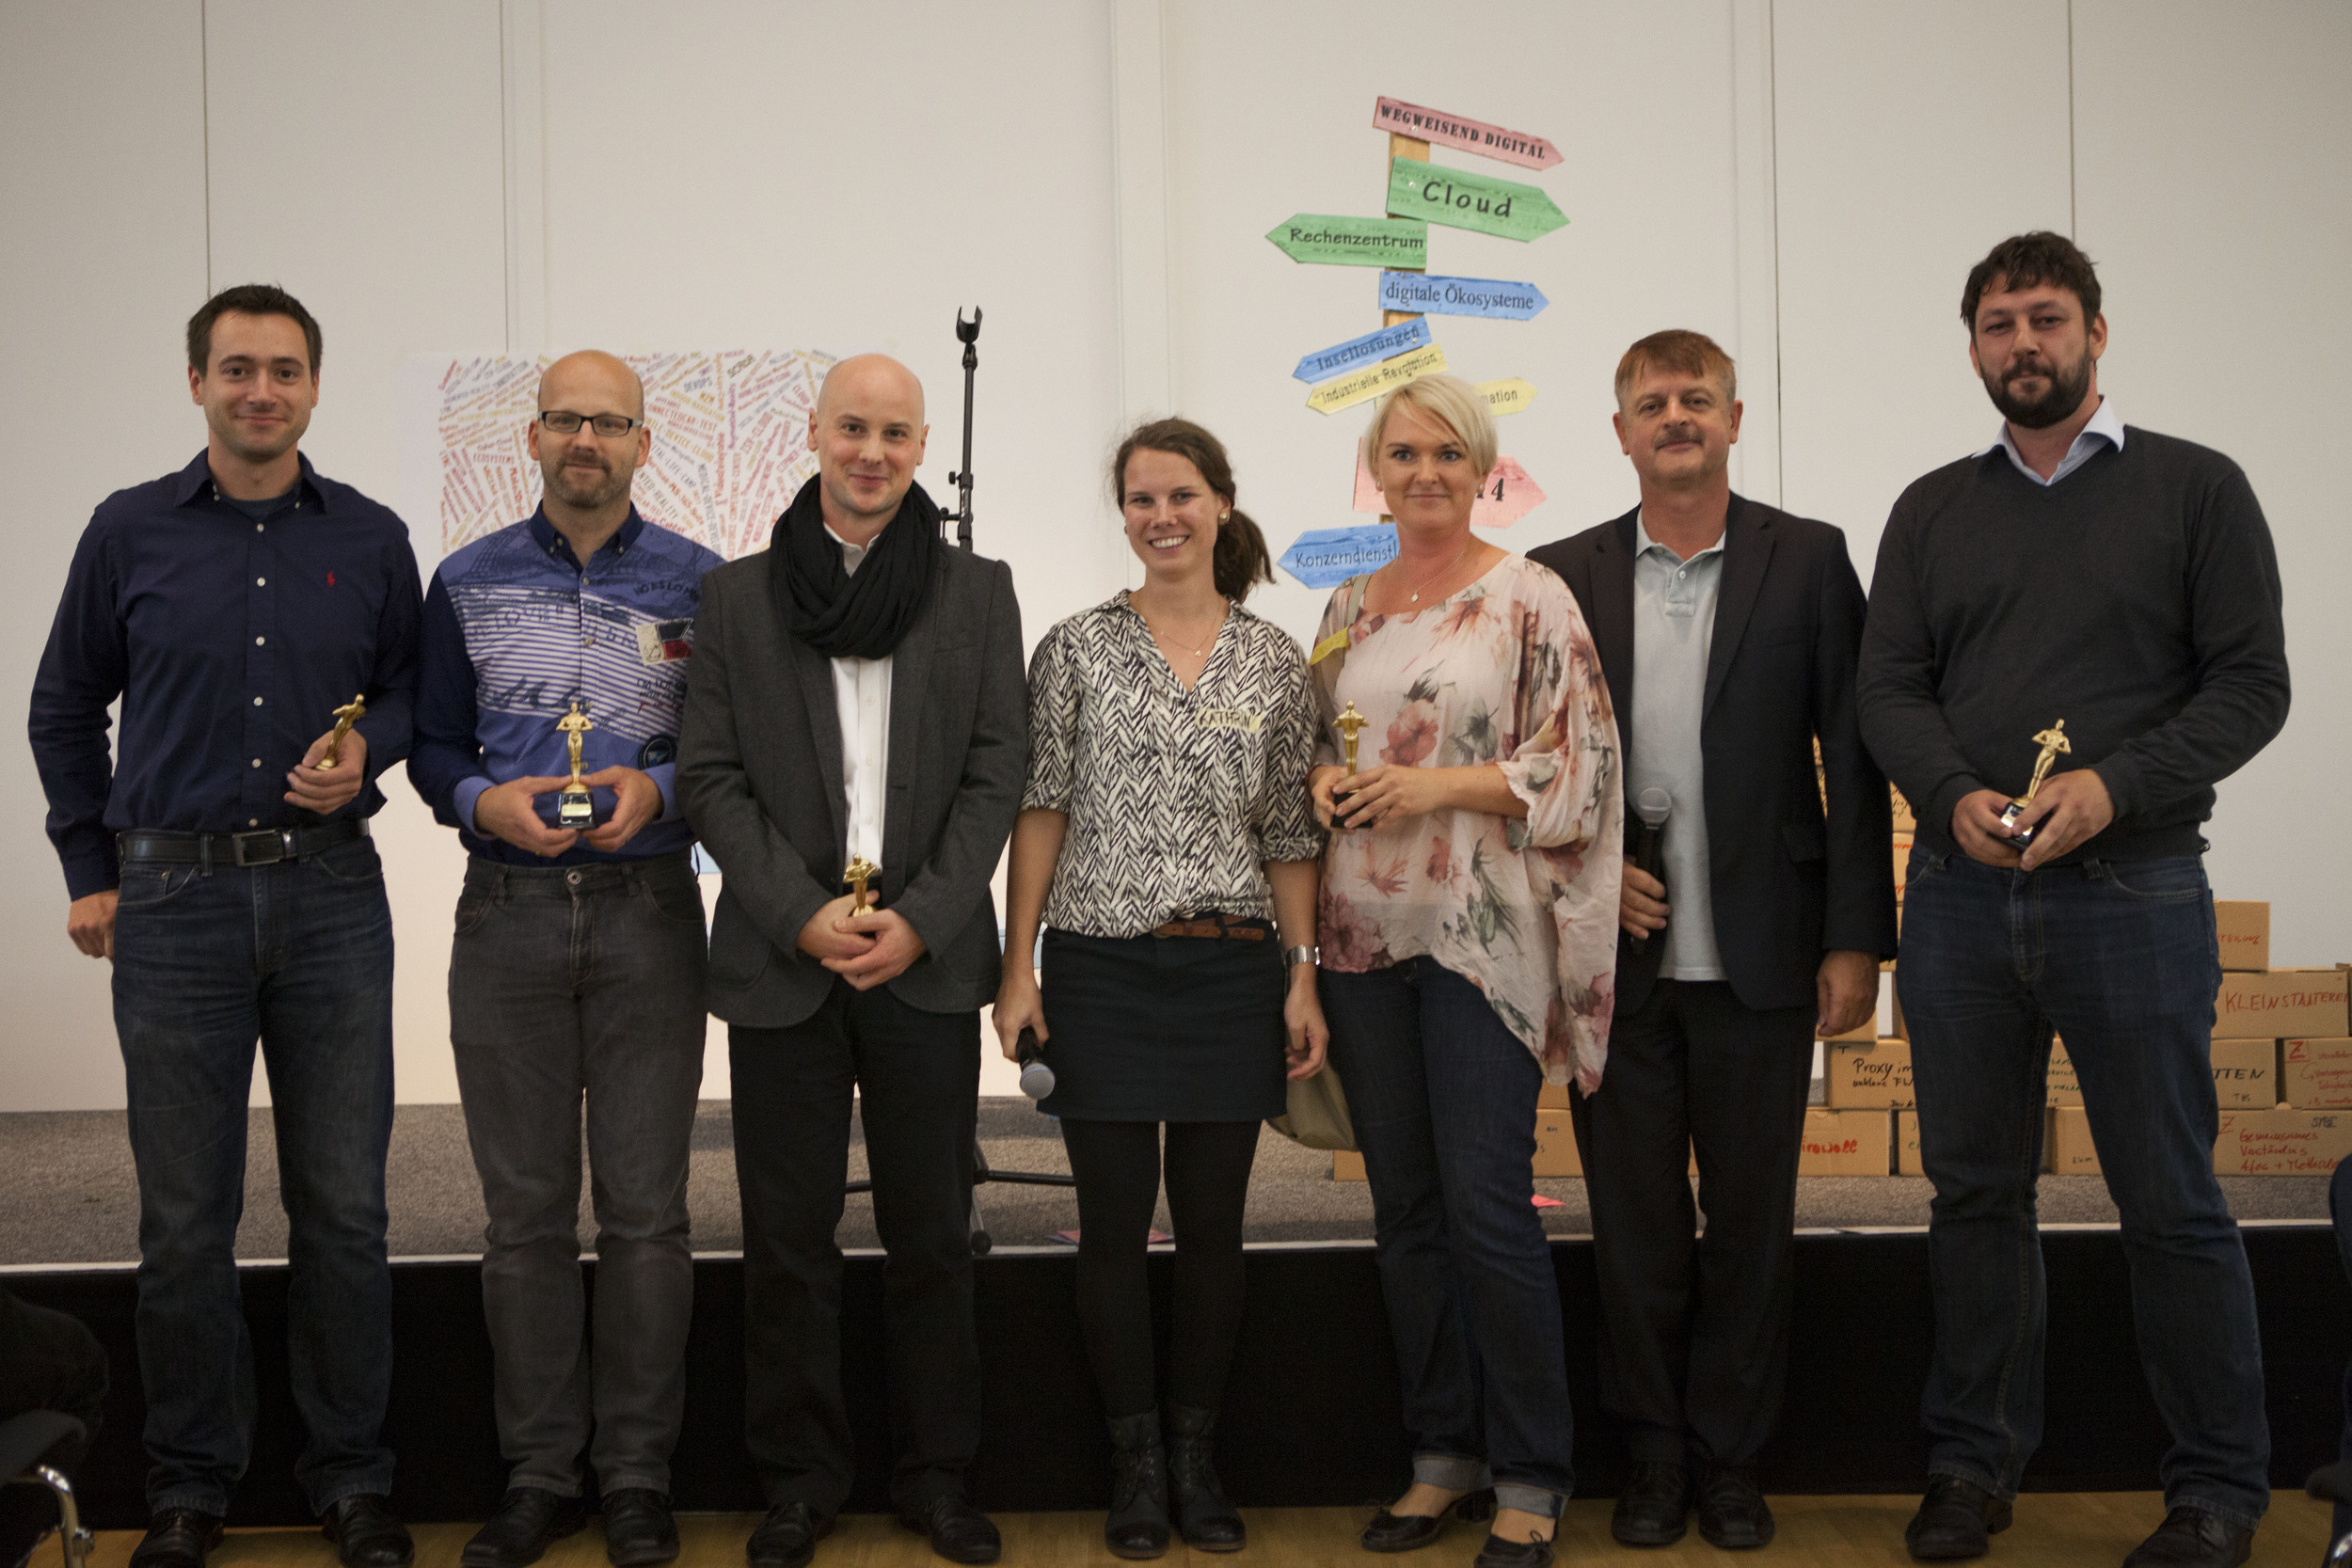 Gewinner des Best Session Award - Digital Life Camp 2014